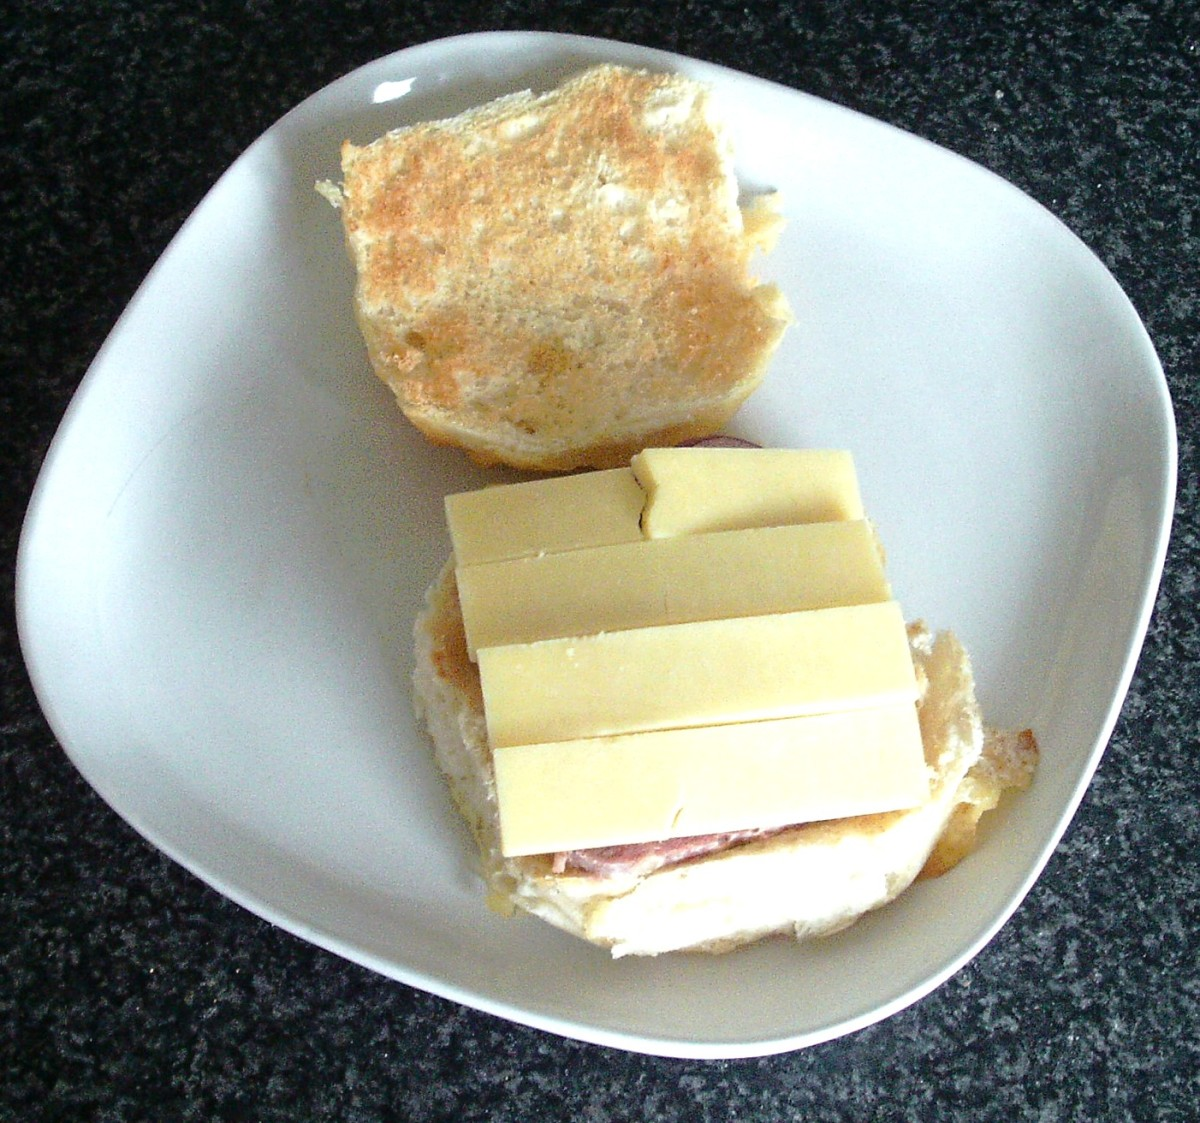 Cheese slices are laid over corned beef, tomato and onion